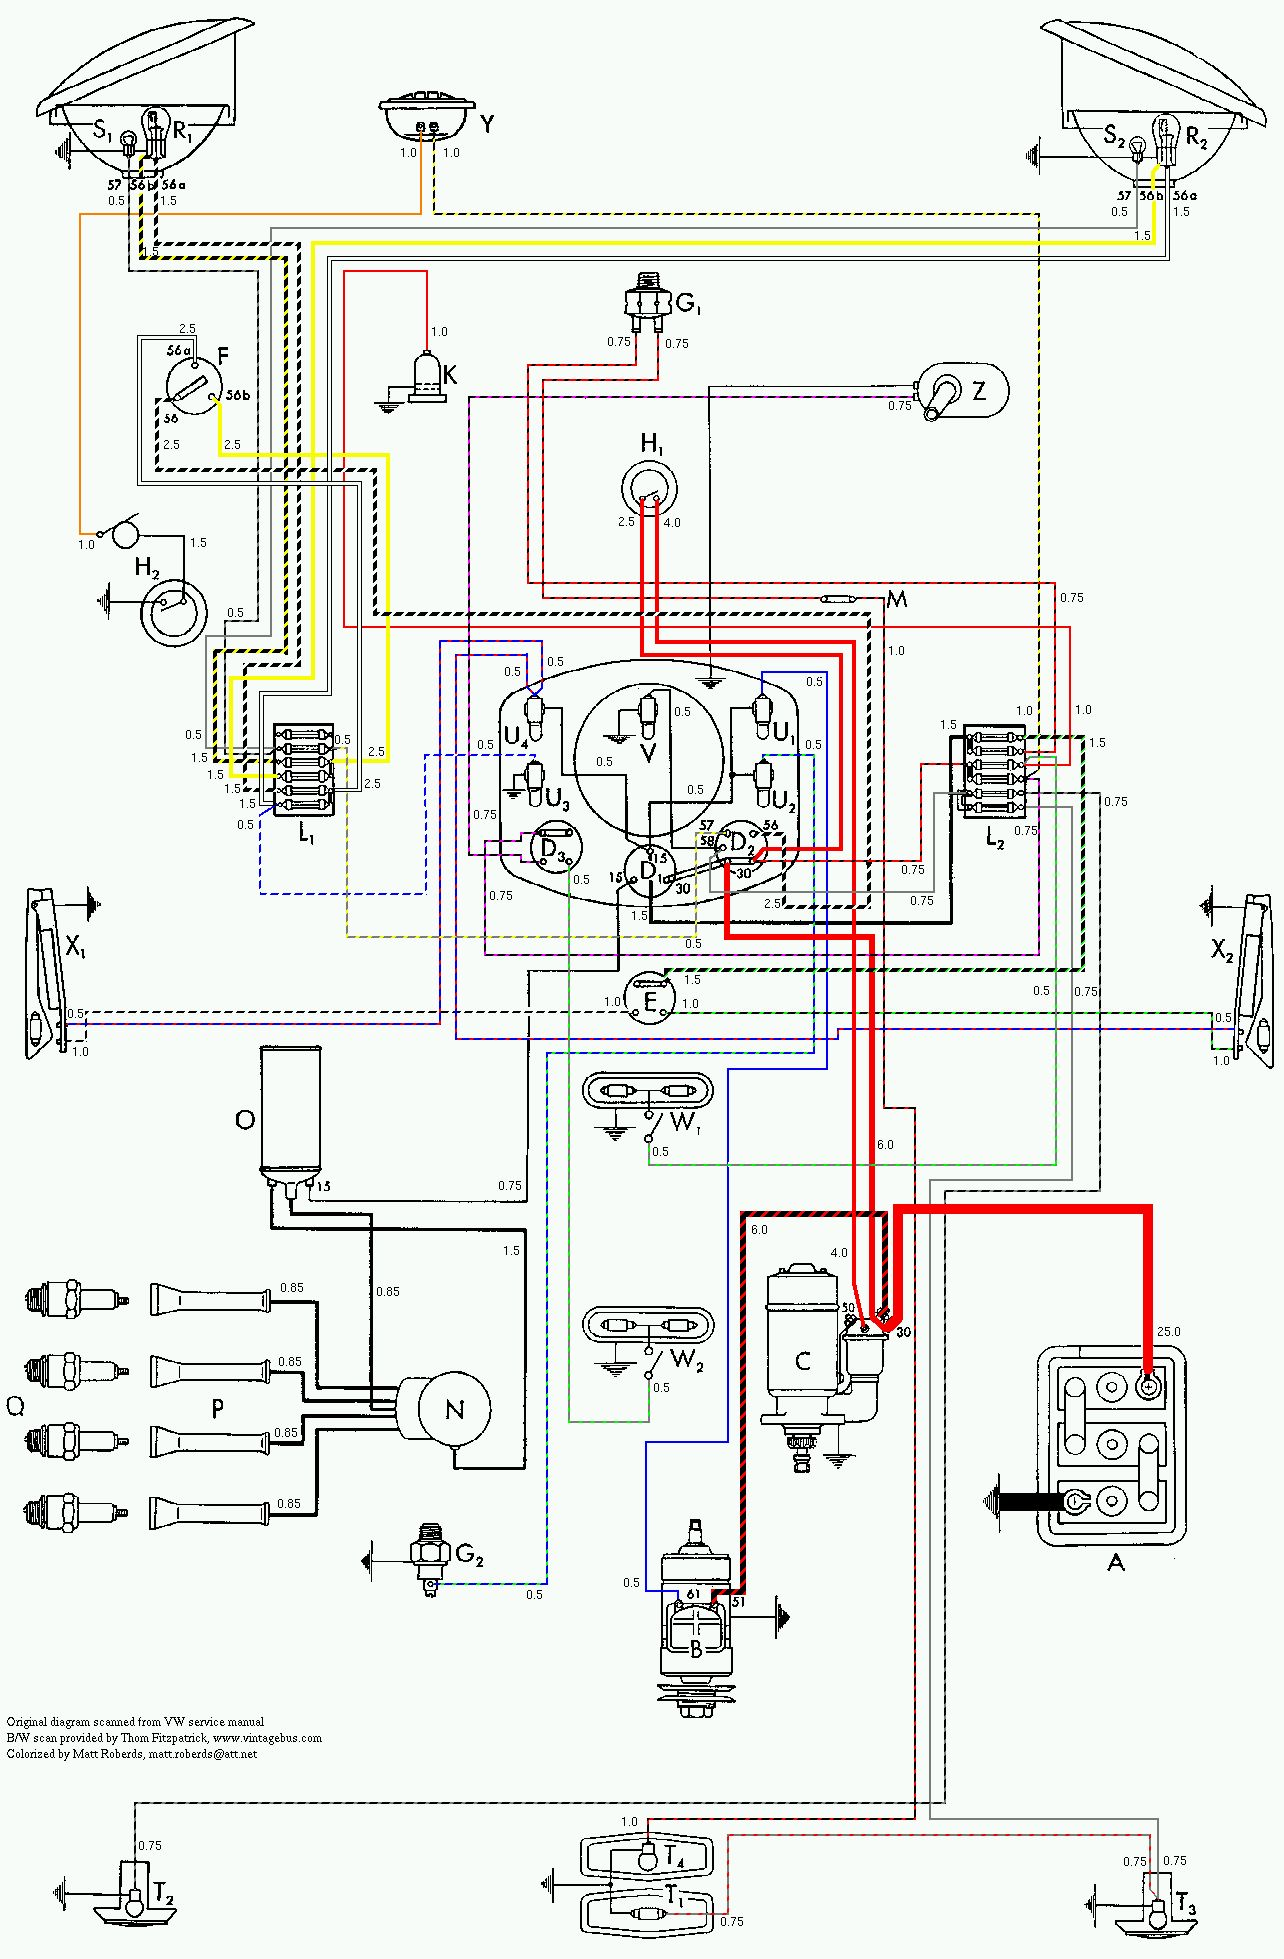 Sending Unit Wiring Diagram For 1959 - Block And Schematic Diagrams •